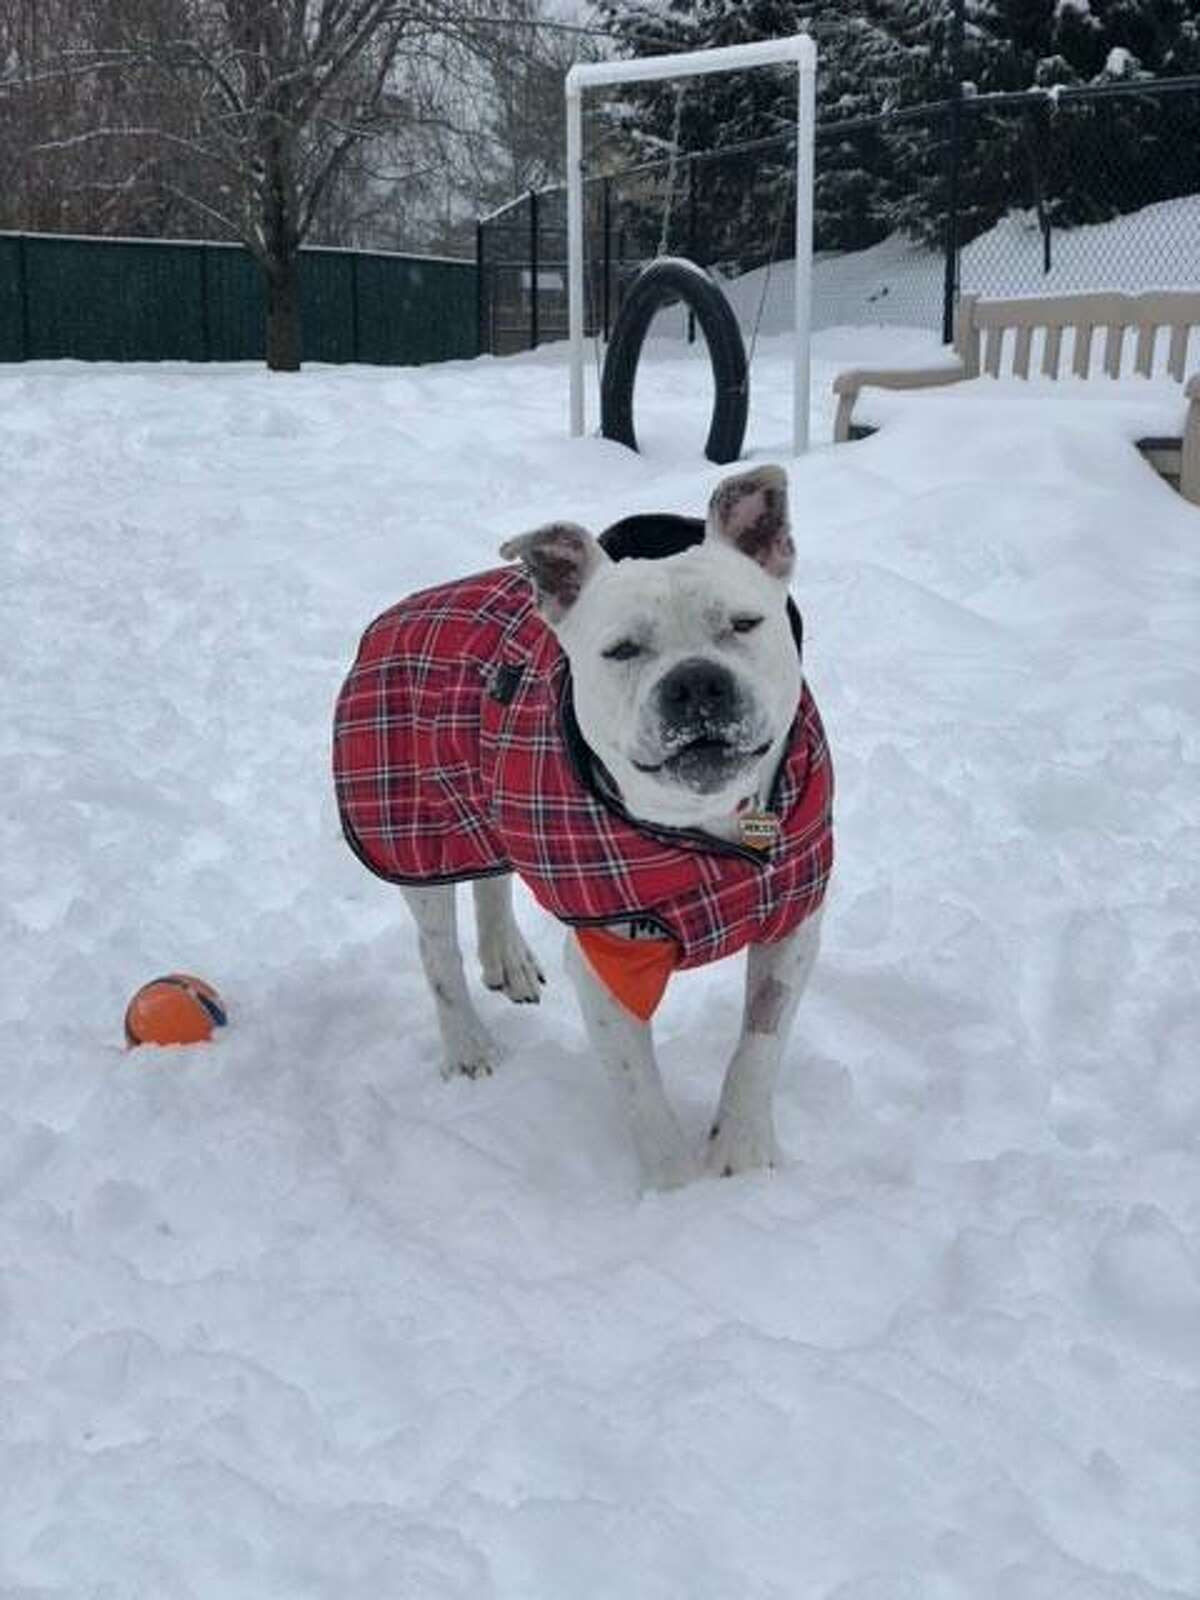 Jericho is a bulldog mix who needs a forever home. He is available to meet by calling the ROAR Donofrio Family Animal Shelter, 45 South Street, in Ridgefield, at 203-438-0158, for an appointment.